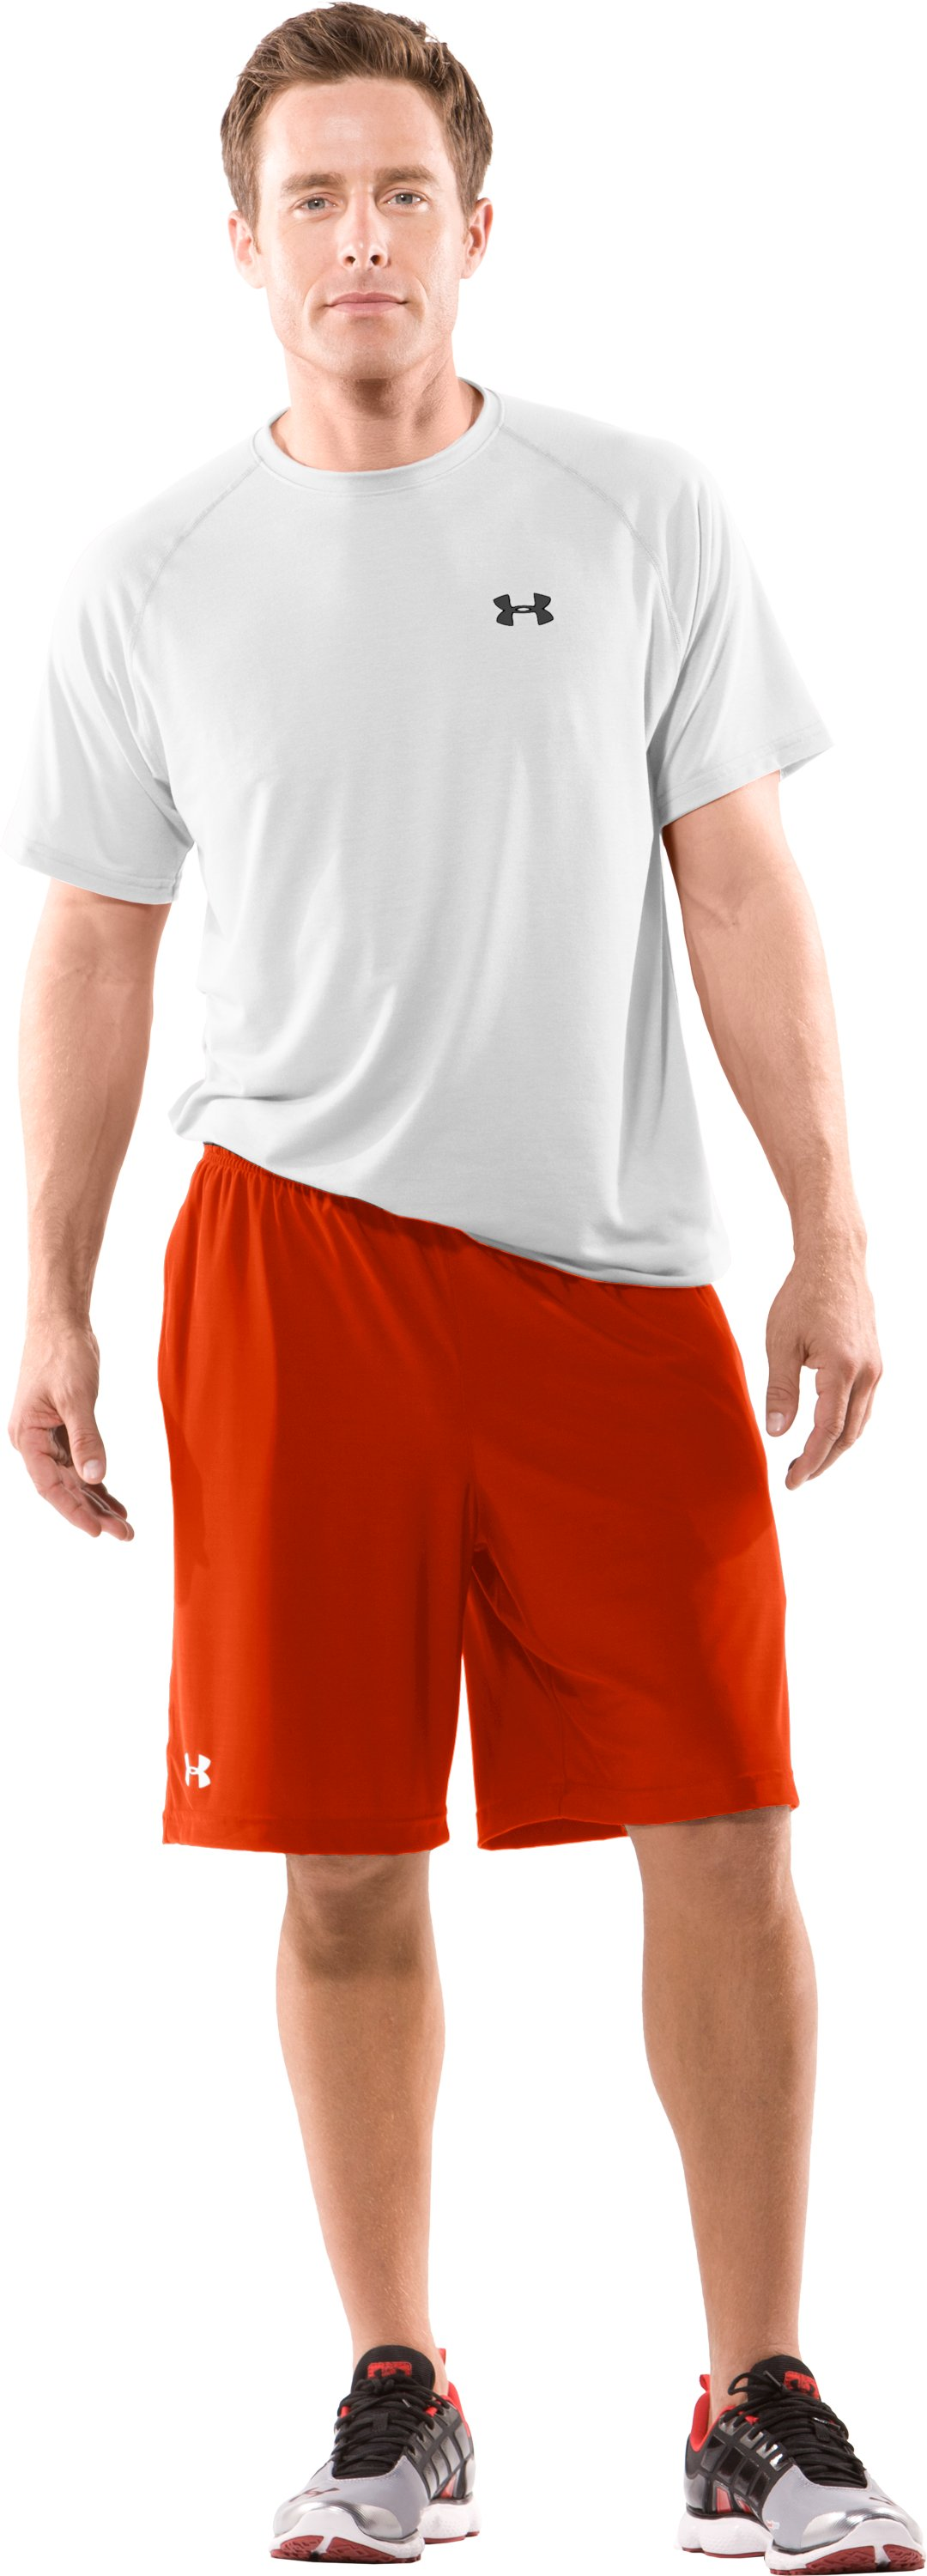 Men's Team Micro Short II, Dark Orange, Front